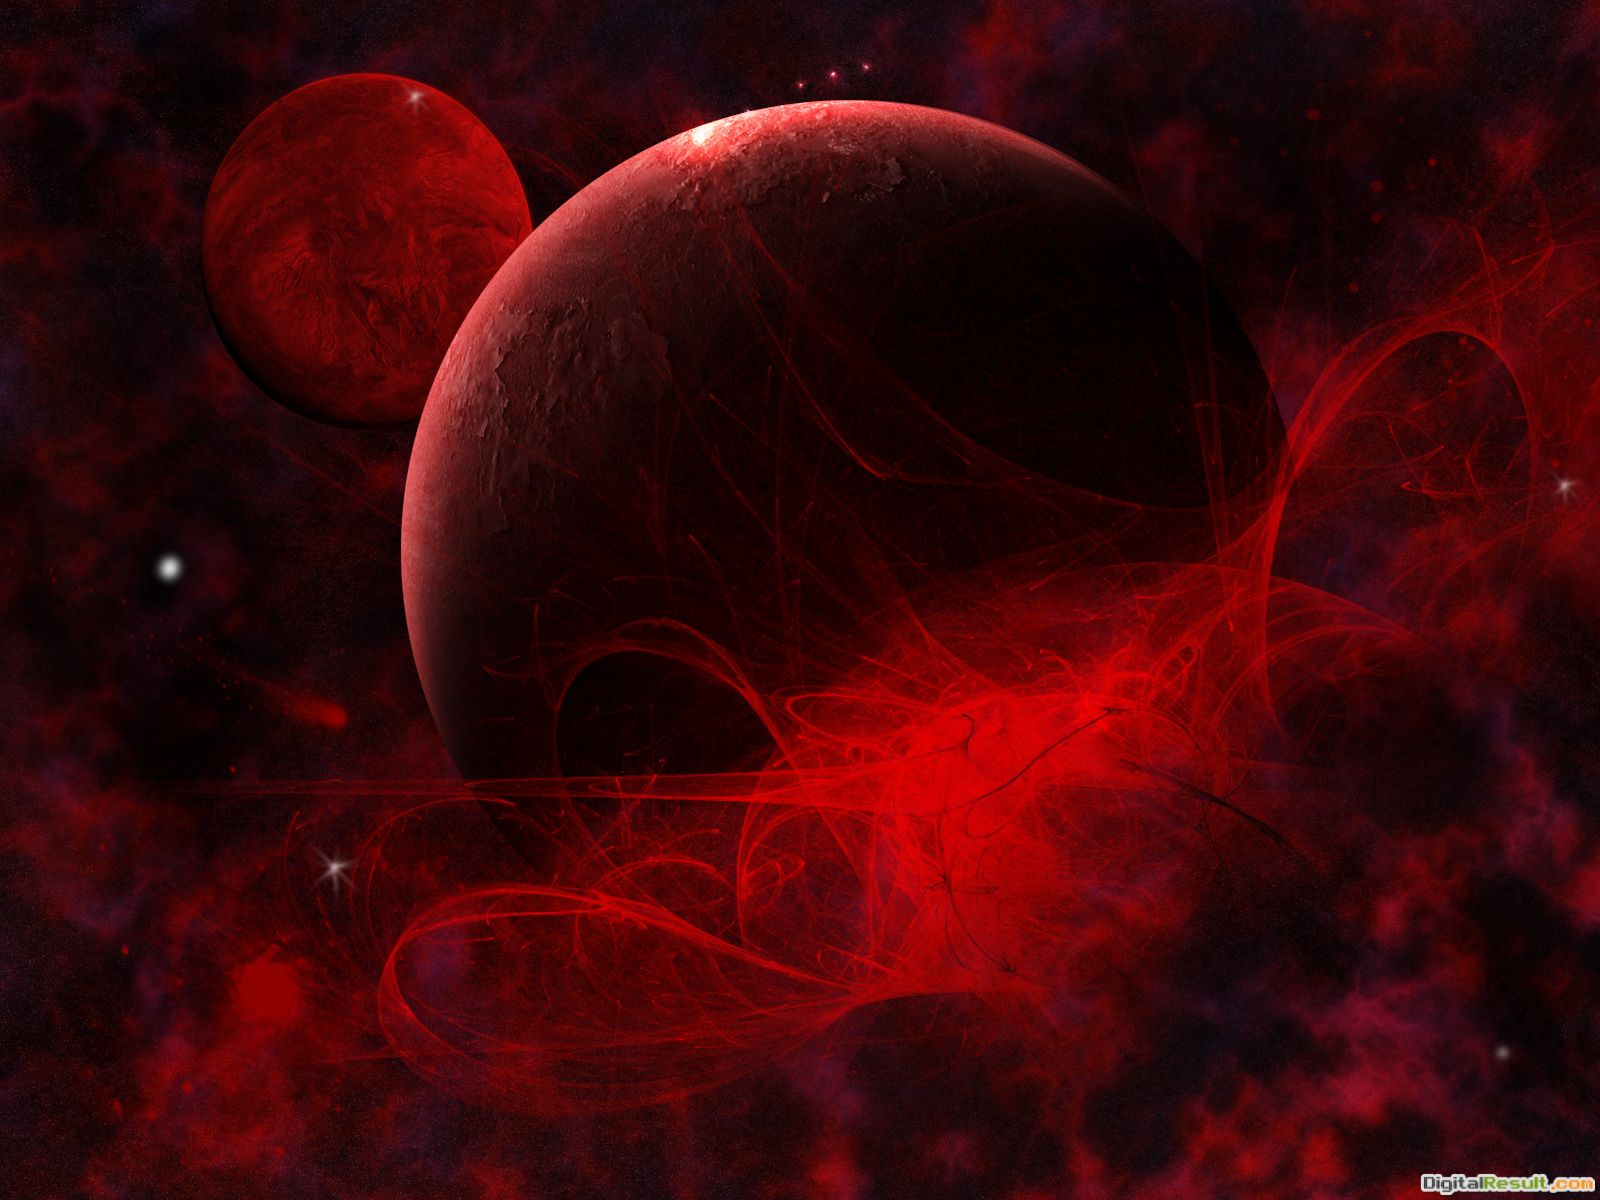 Wallpaper #286 Birth of a planet | Red and Black Wallpapers 360